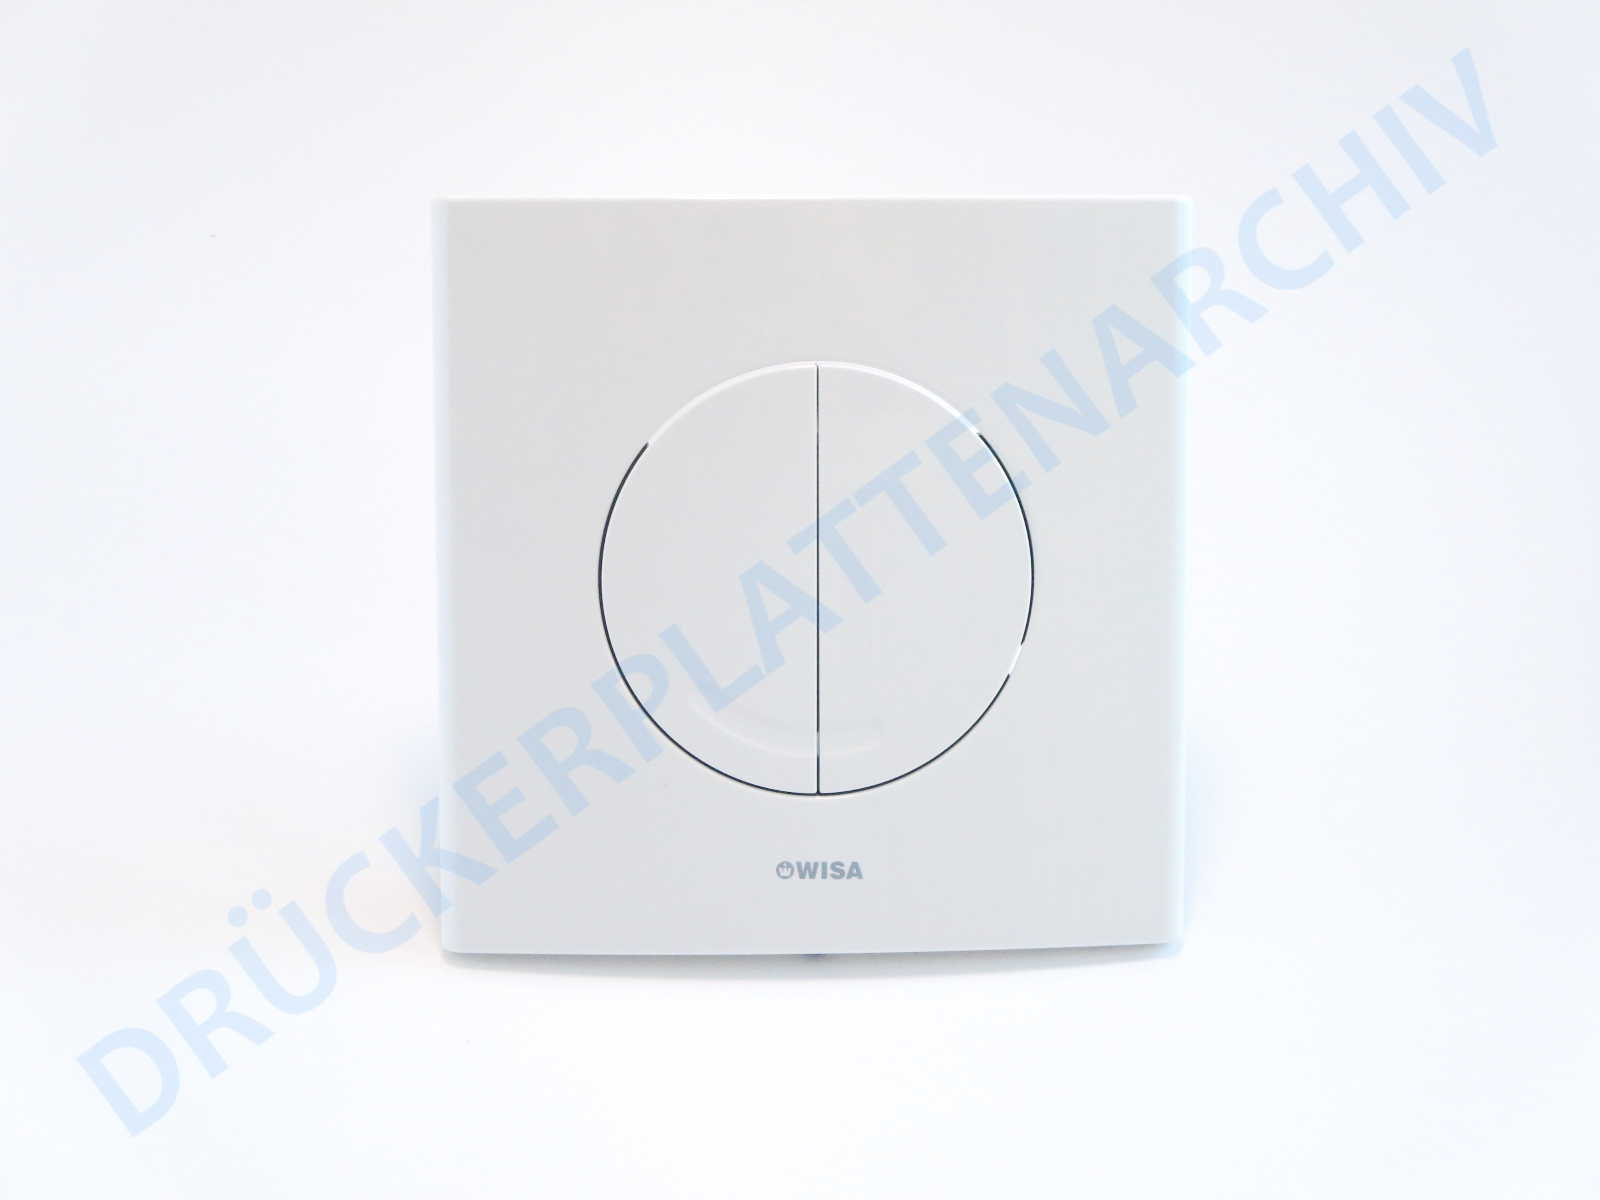 Black OL0593 Electronic project box ABS 118mm x 66mm x 33mm PP3 comp BC3 White